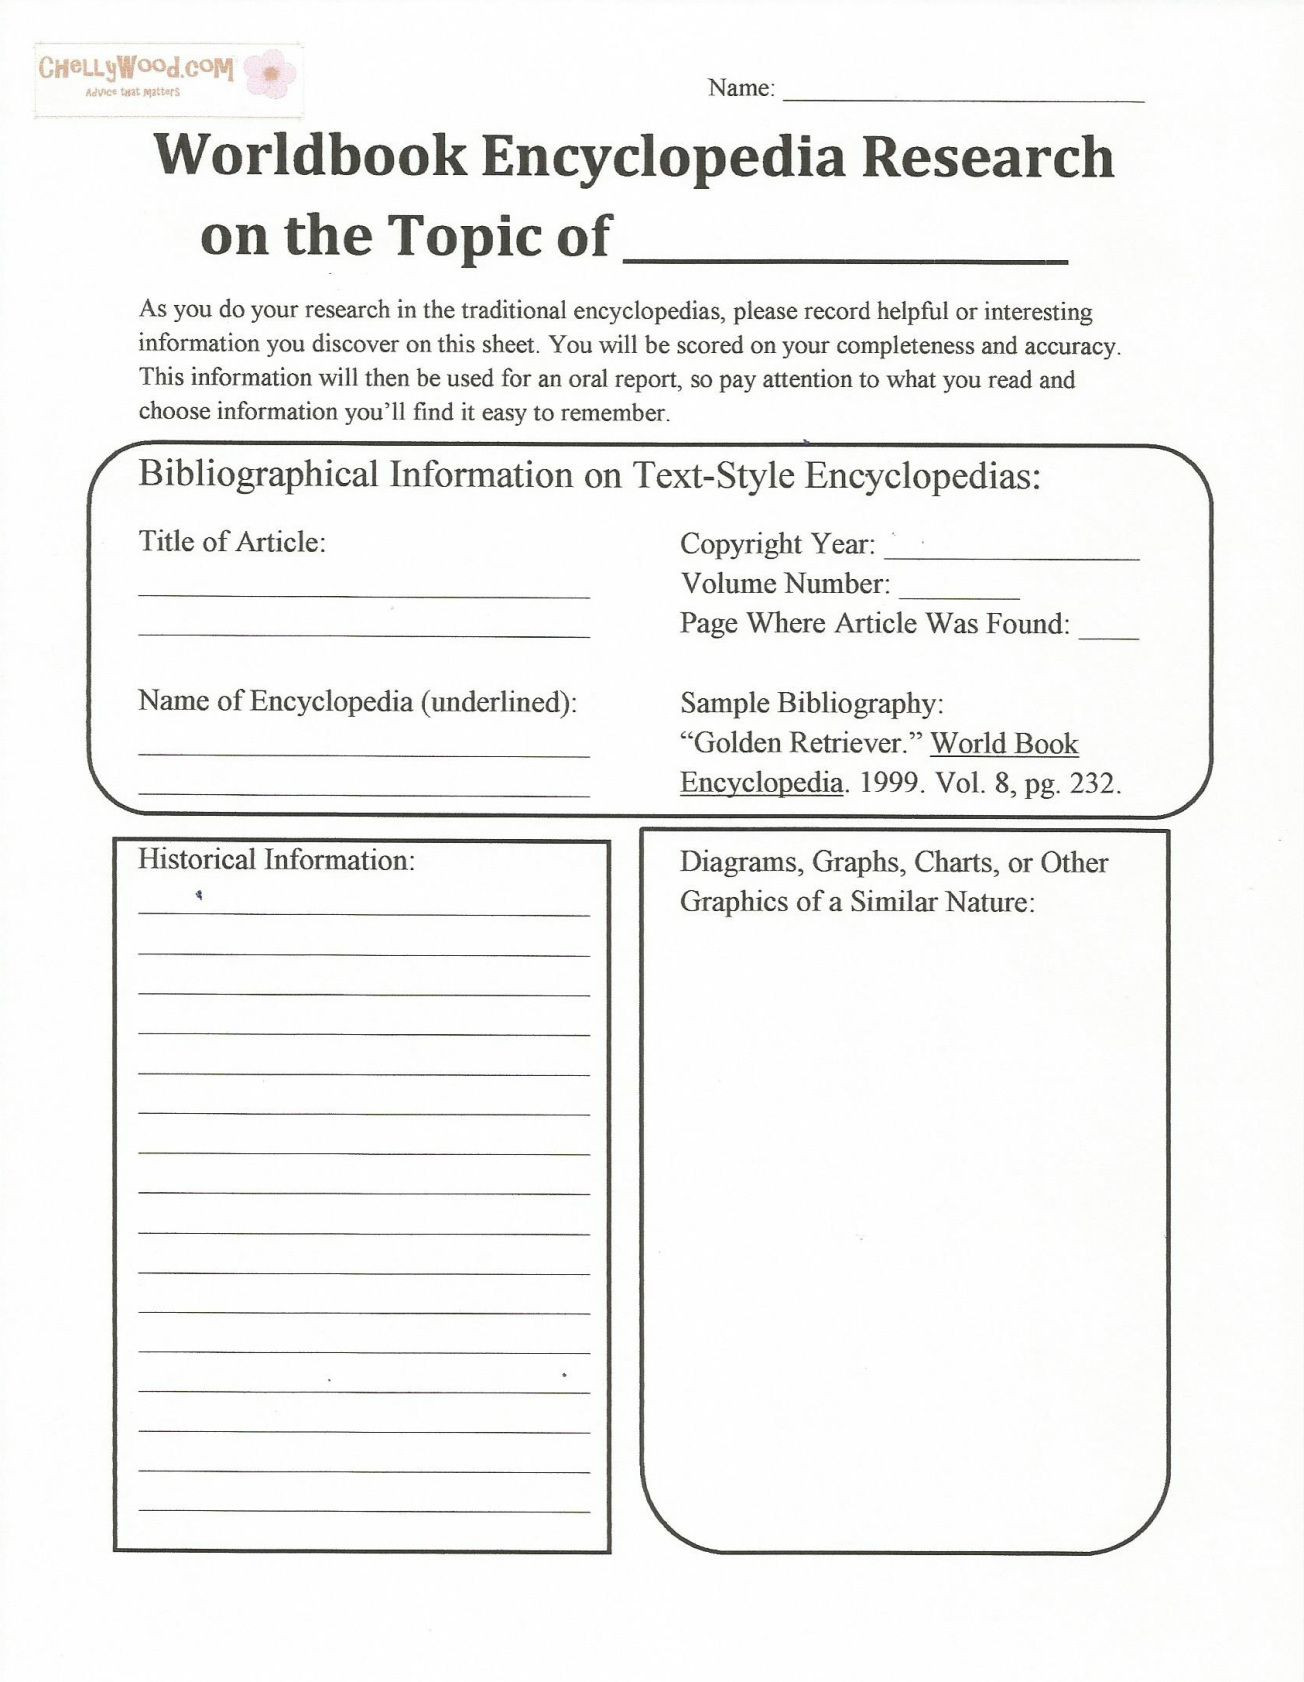 Dictionary Skills Worksheets Middle School Free Printable Encyclopedia Handout for Teaching Research